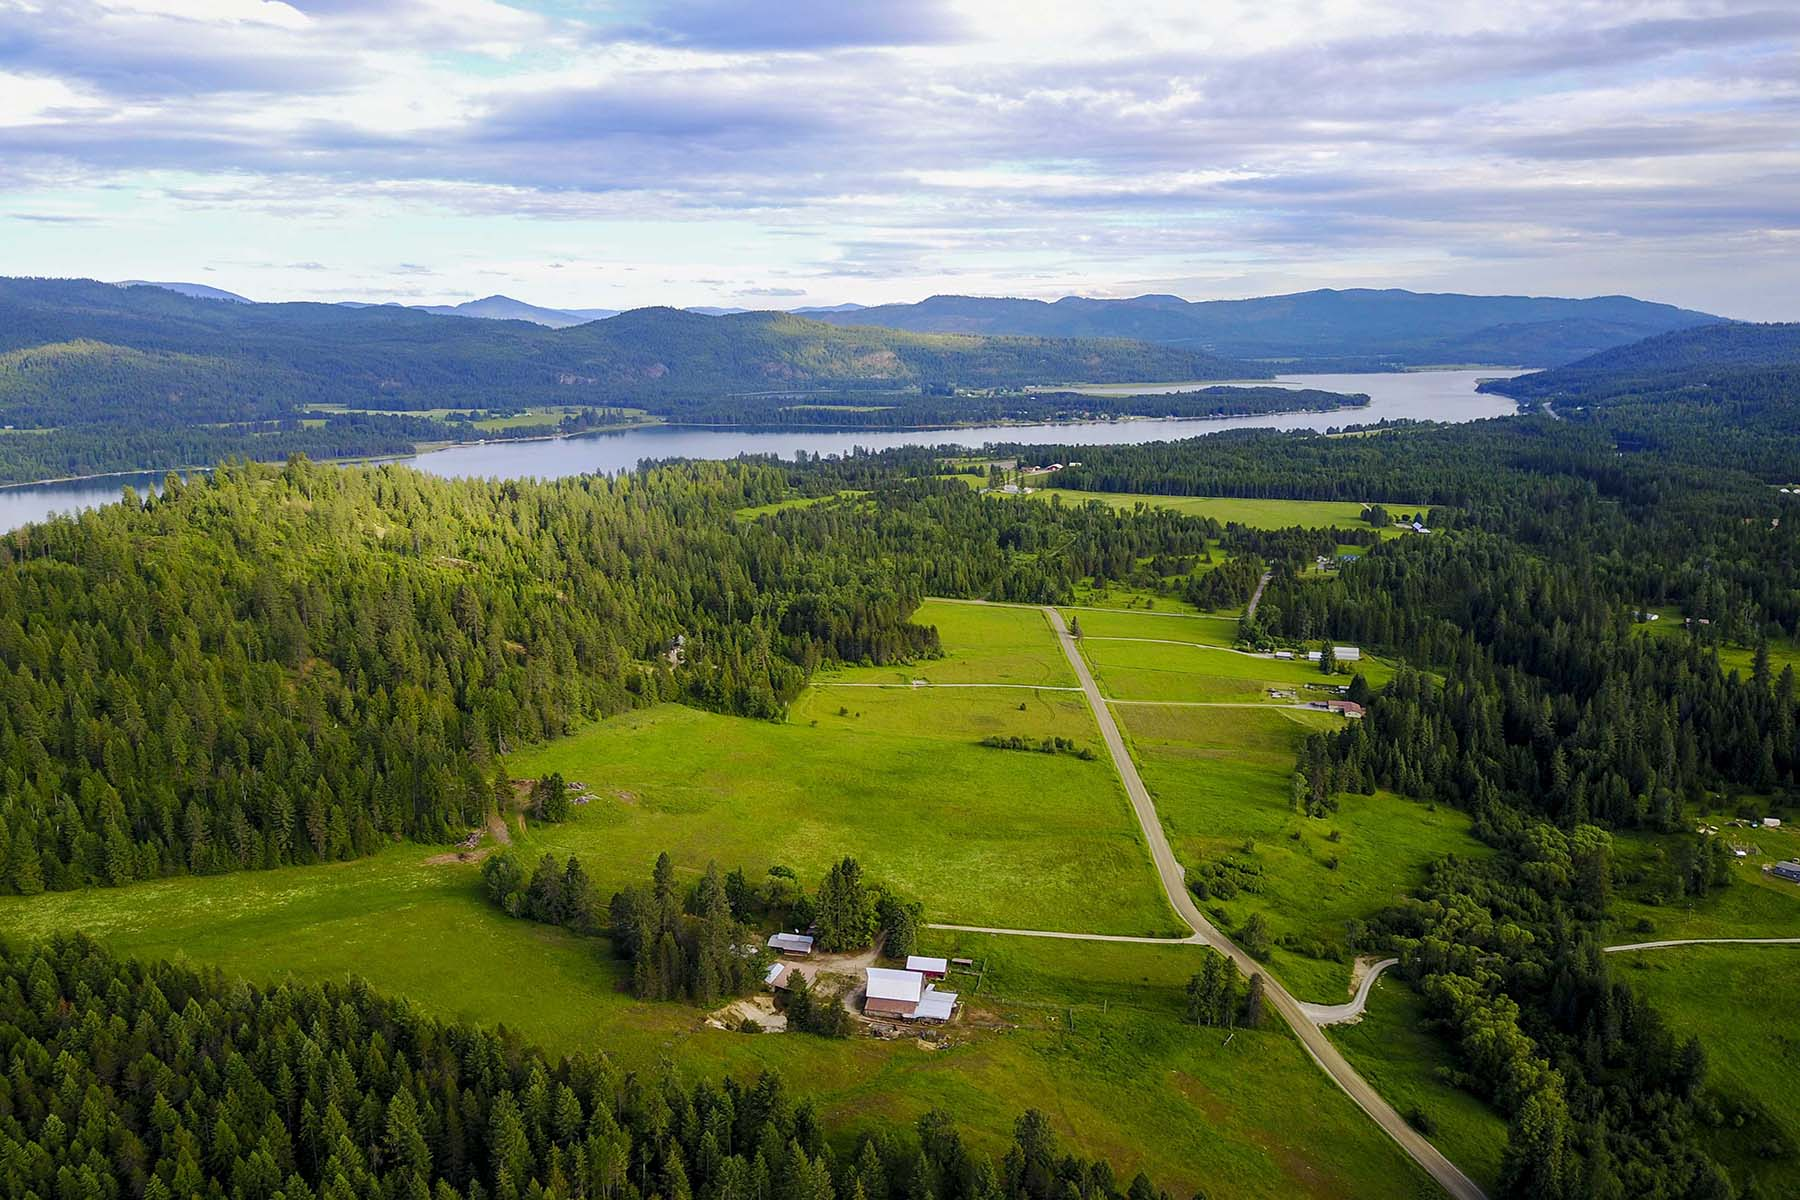 Single Family Home for Sale at Picturesque Horse Property 3315 Wrenco Loop Road 44 acres Sandpoint, Idaho, 83864 United States